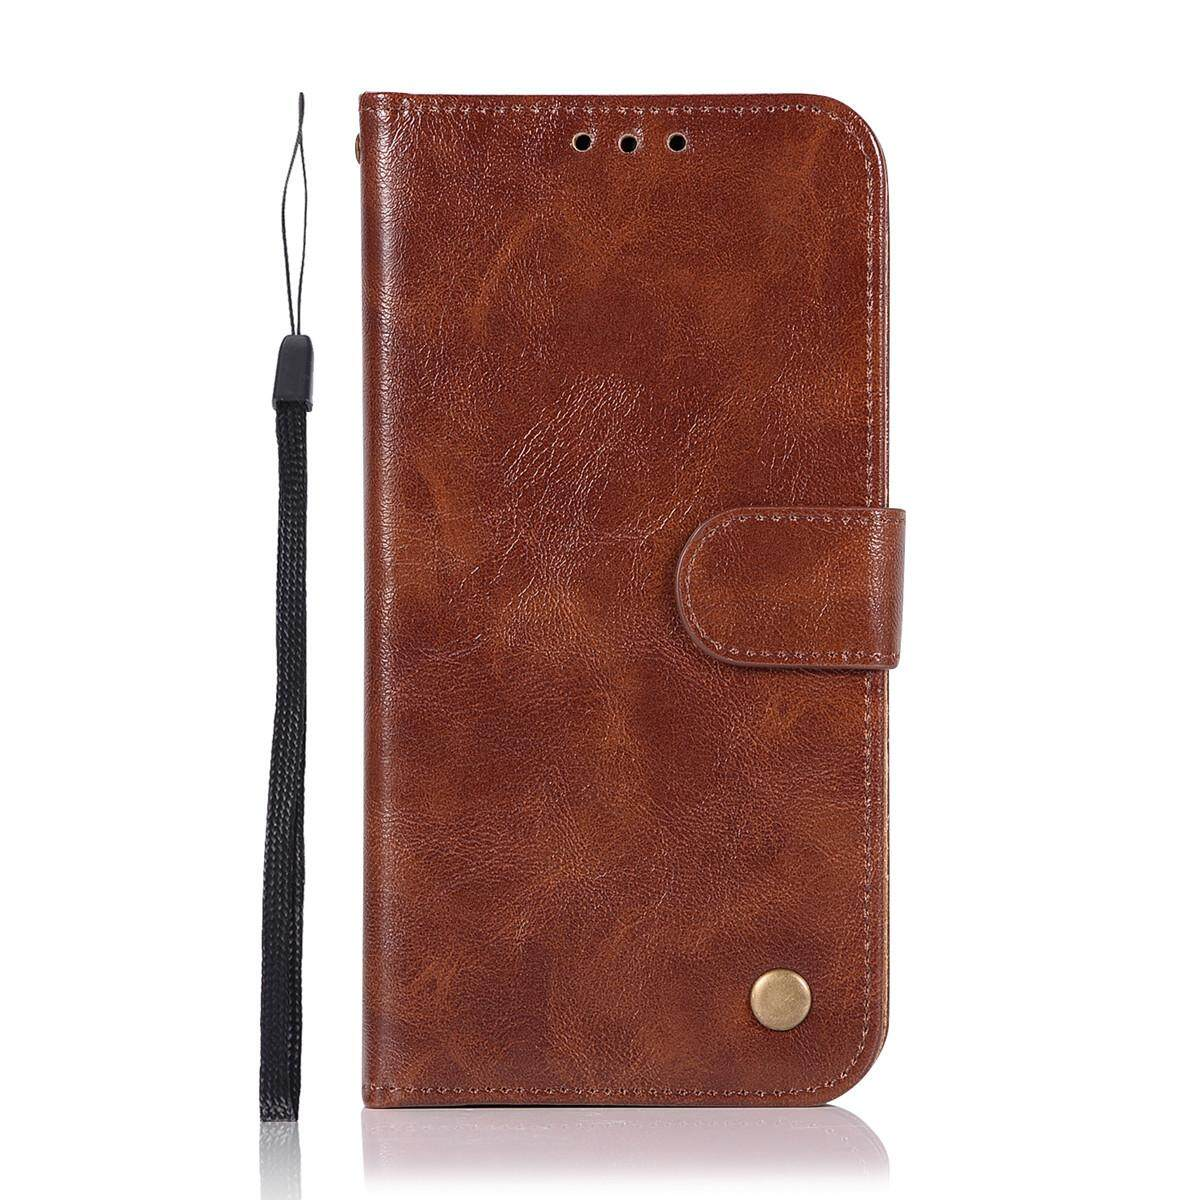 For Samsung Galaxy A8 2018 Retro Vintage Case PU Leather Magnetic Flip Stand Wallet Cover with. Source ... Stand Wallet Cover with Card Slots and Hand Strap ...